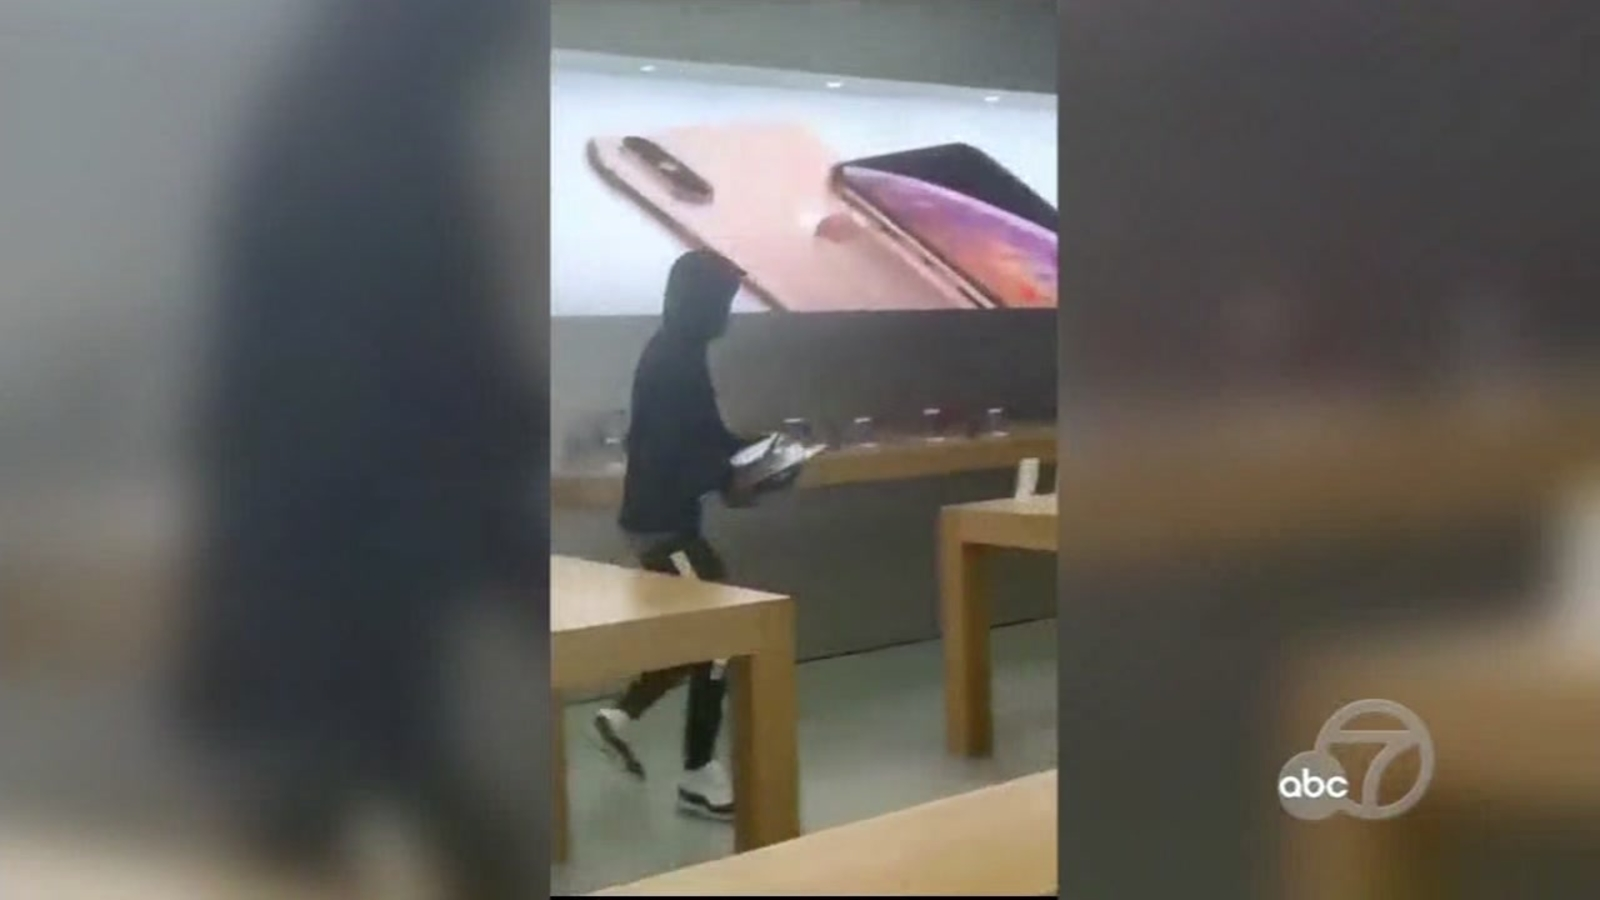 Hillsdale apple store robbed, San Mateo police looking for 3 suspects